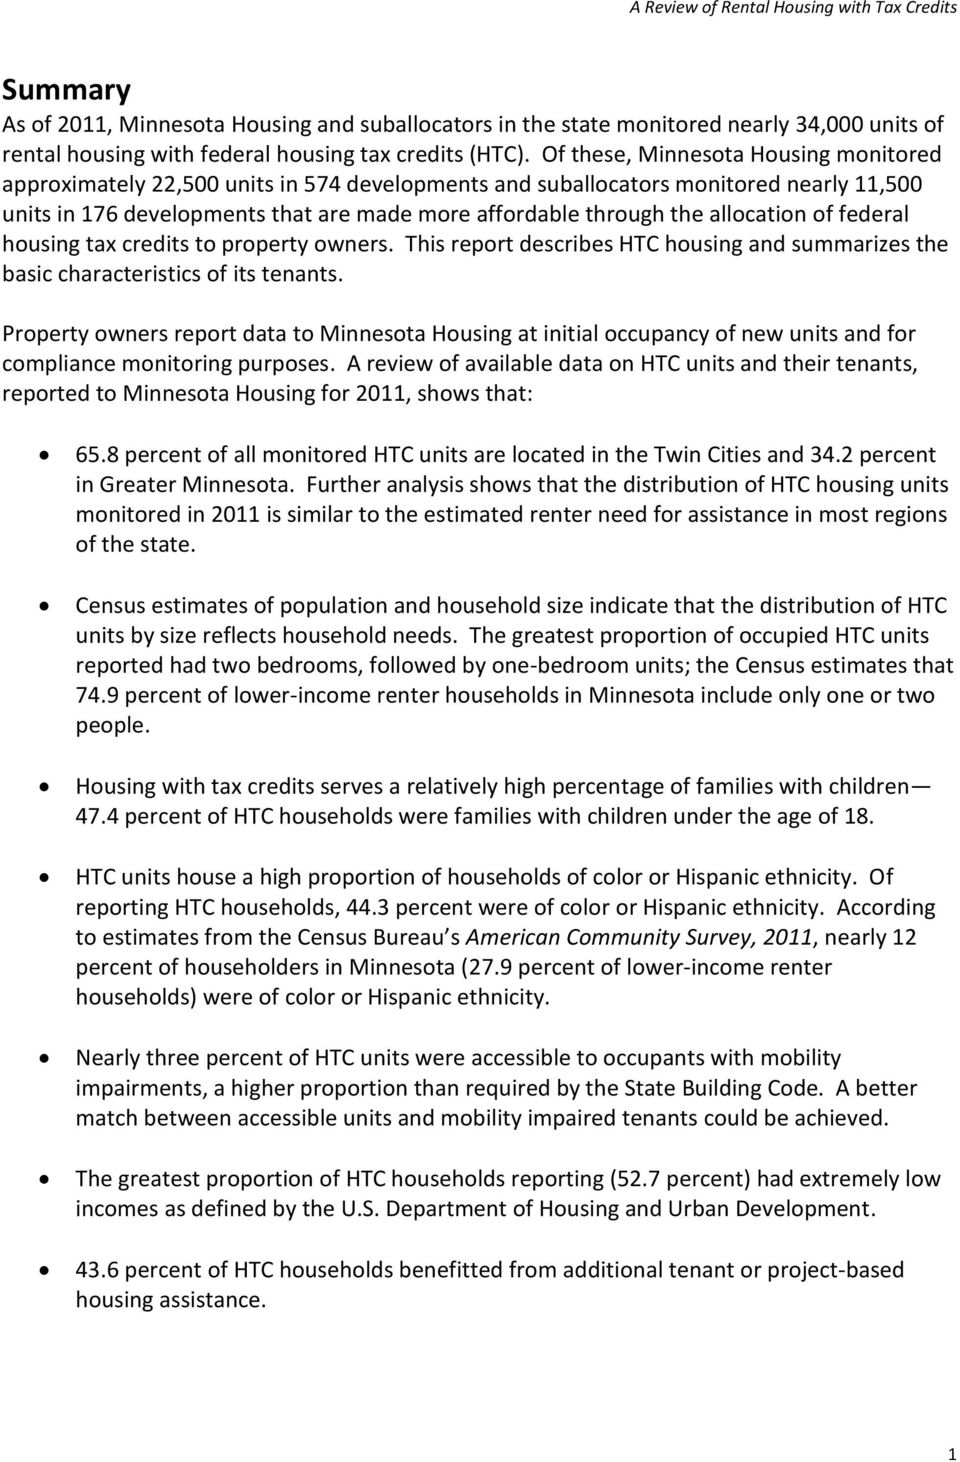 allocation of federal housing tax credits to property owners. This report describes HTC housing and summarizes the basic characteristics of its tenants.